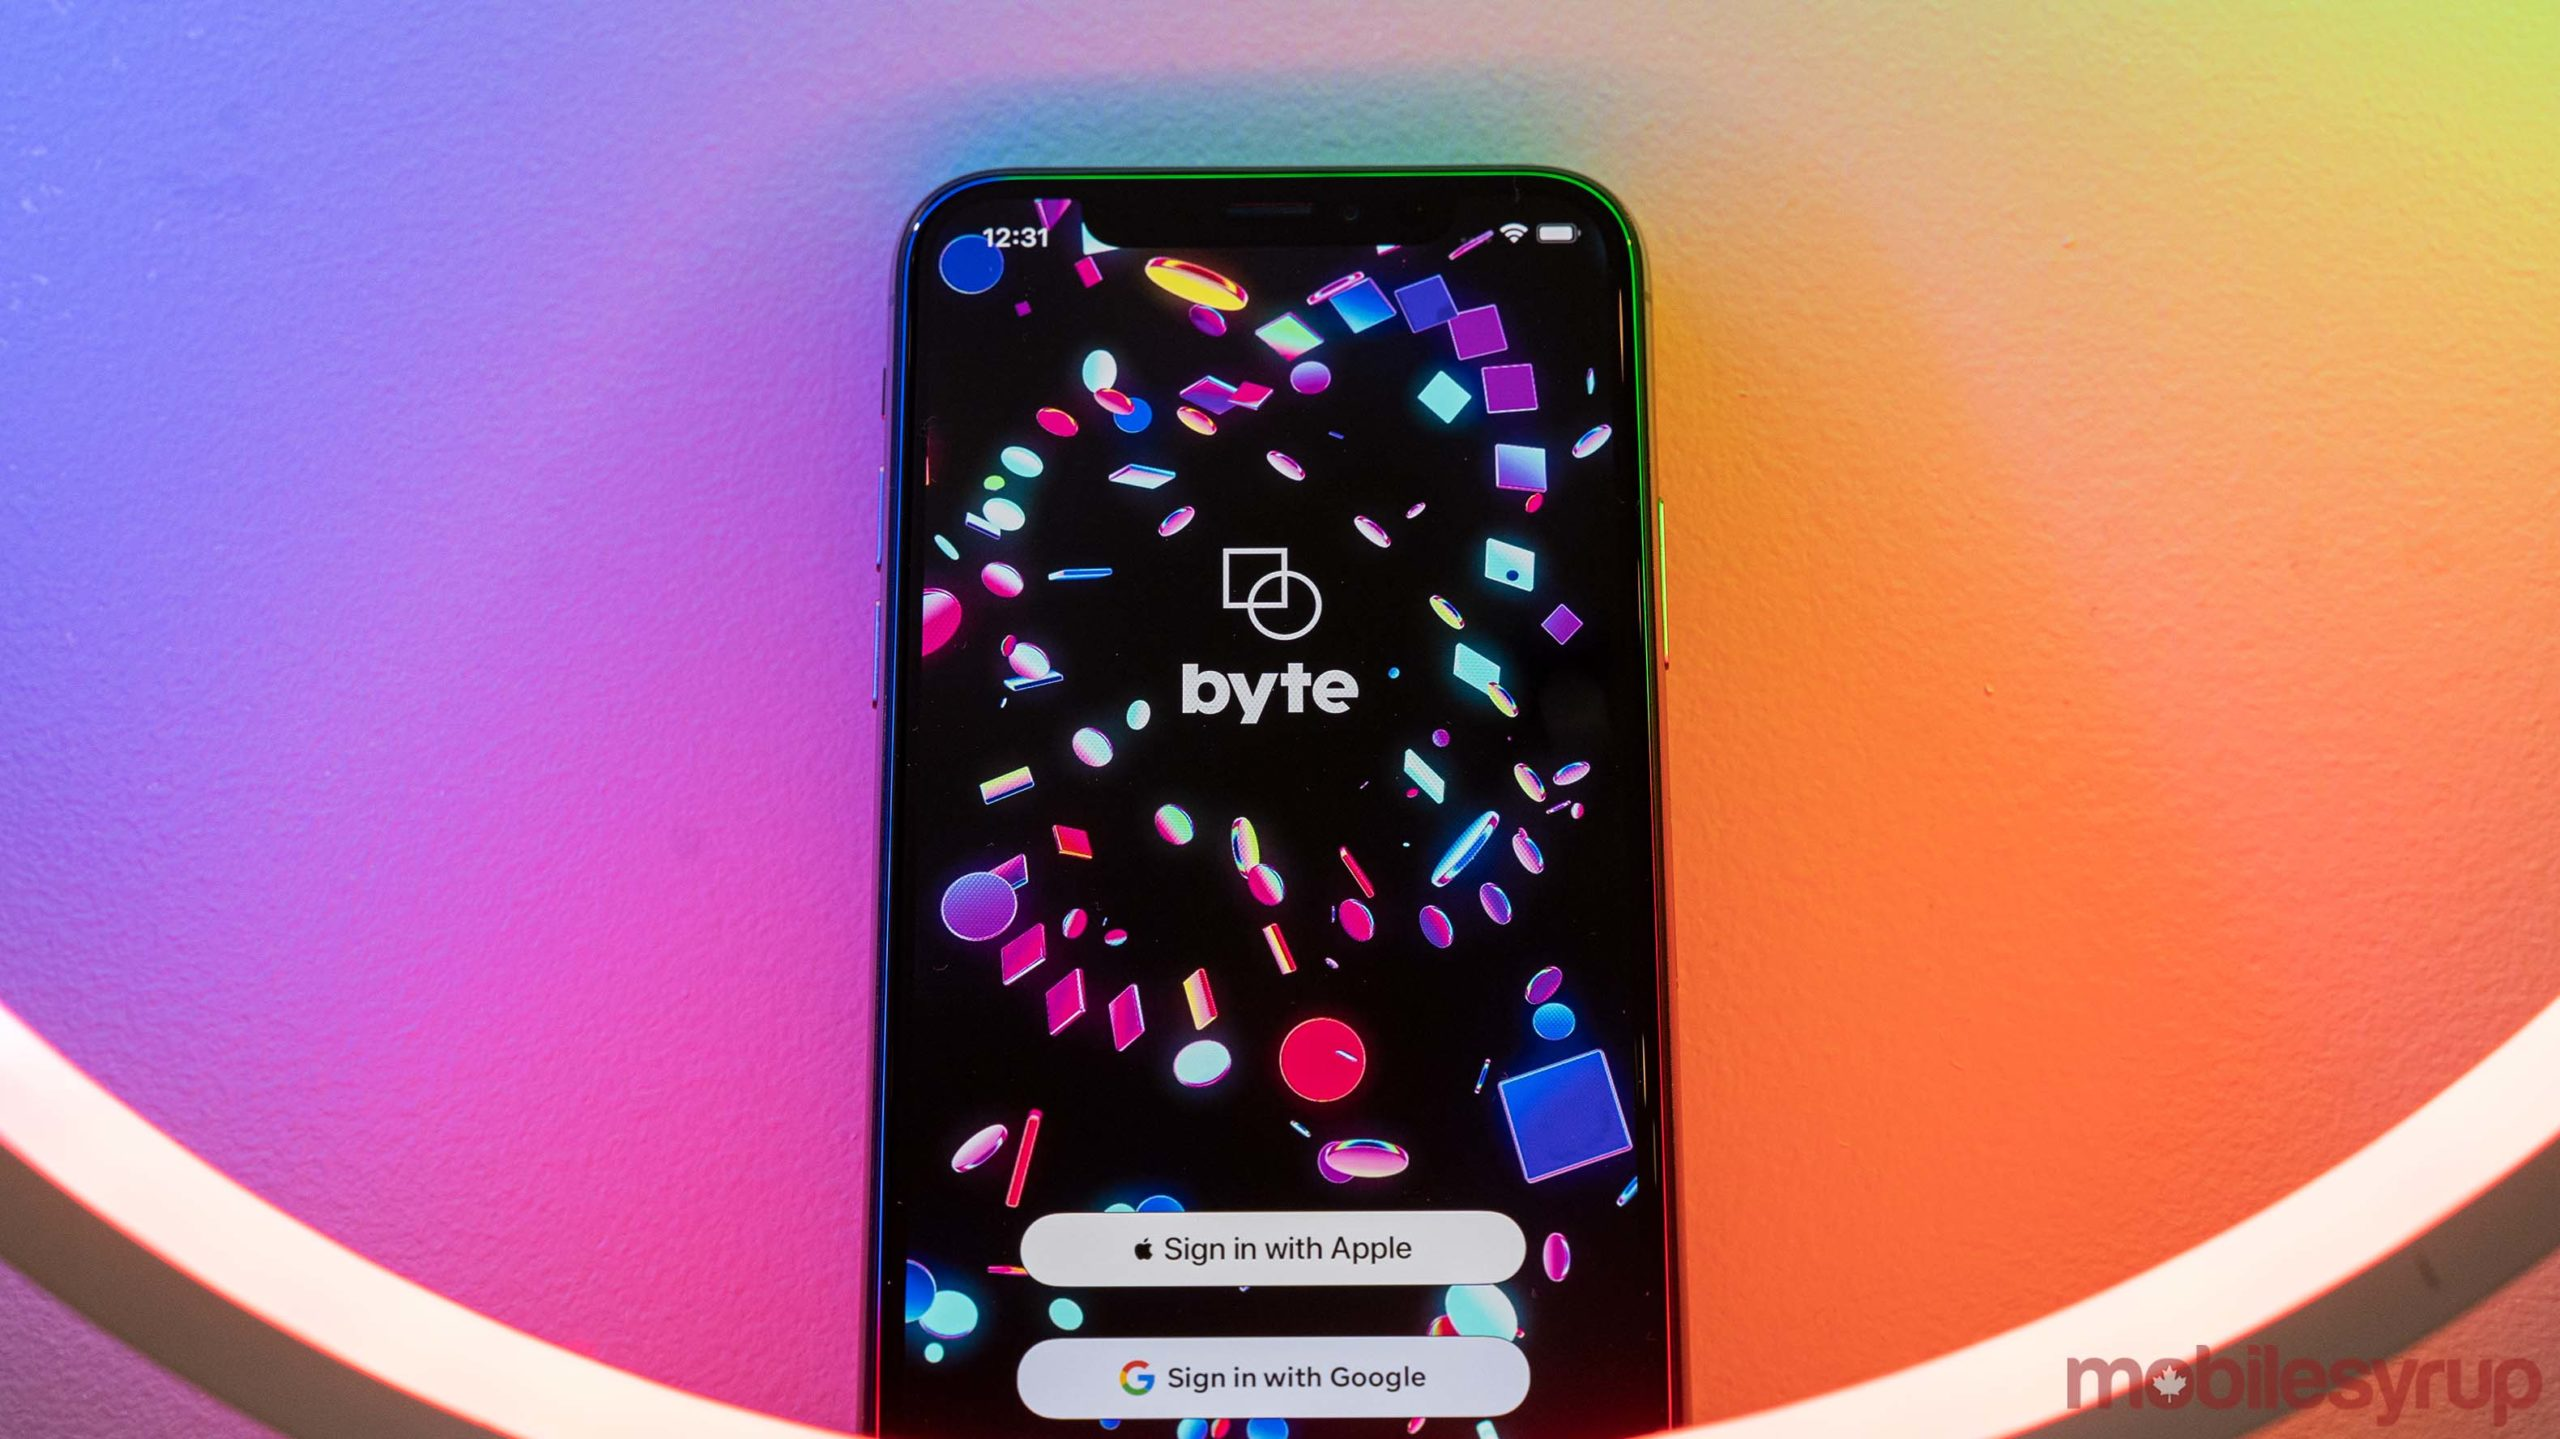 Byte app on iOS